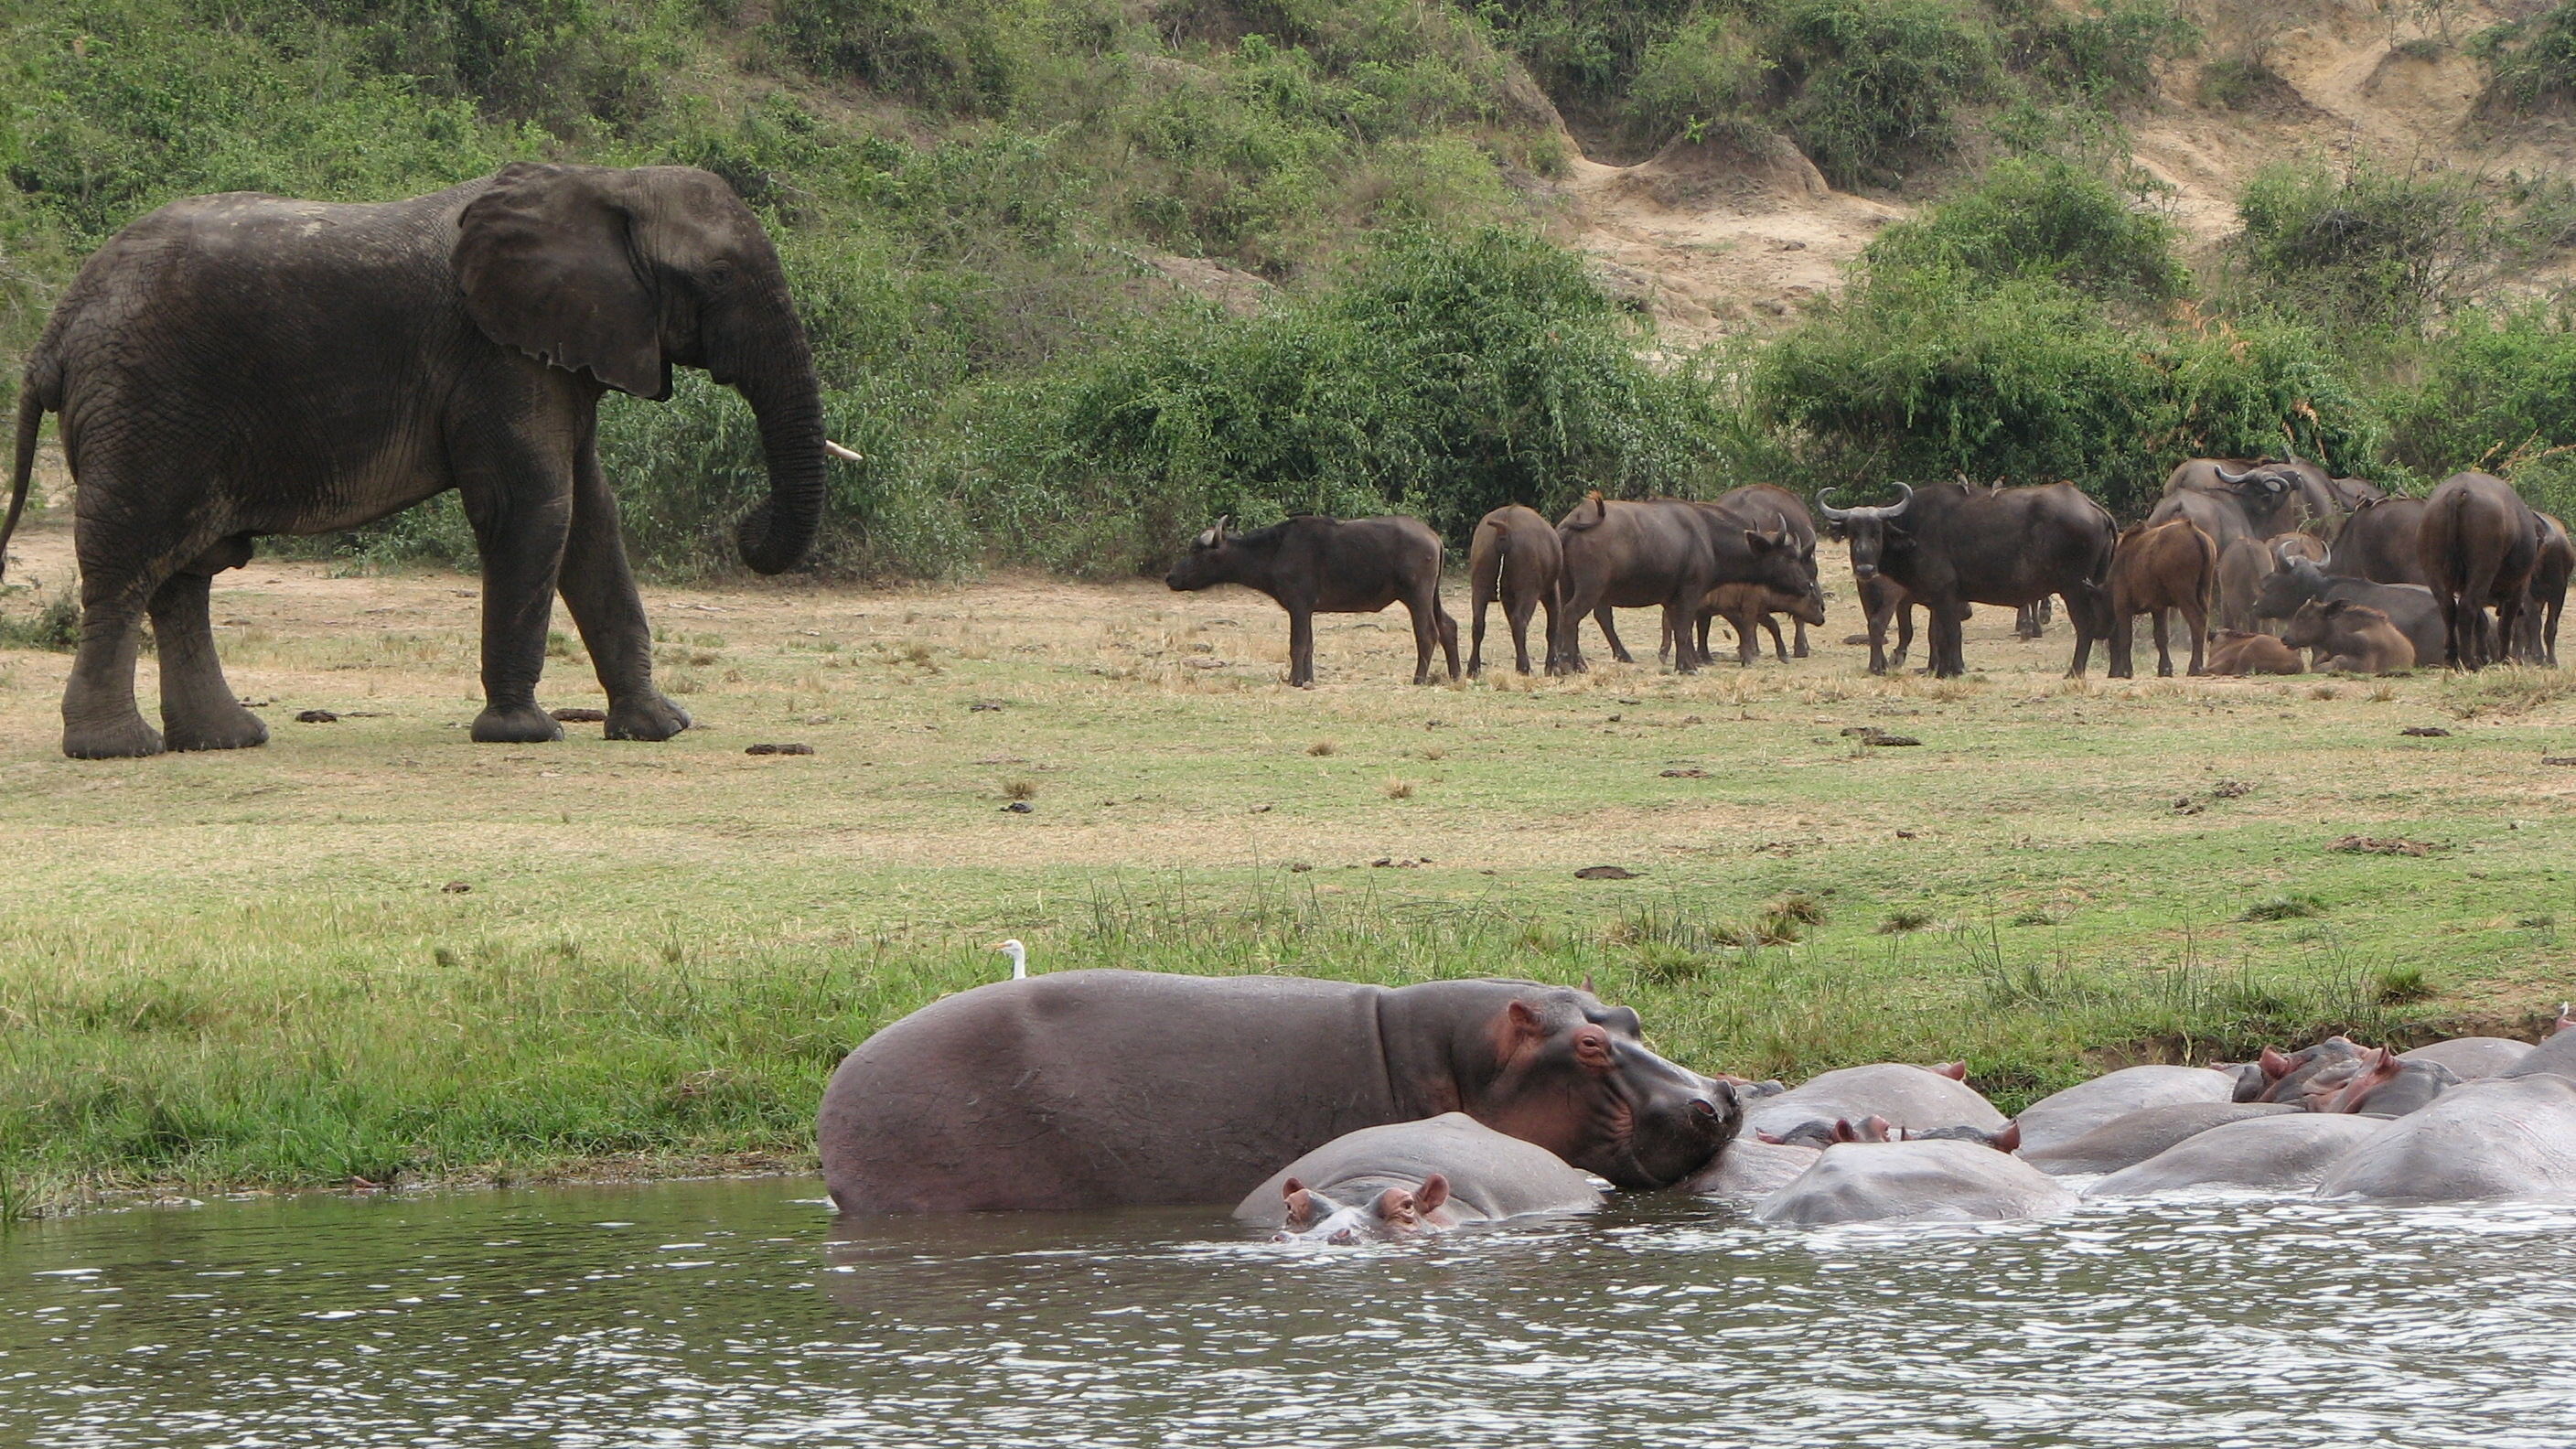 Elephant and Hippo at the Queen Elizabeth National Park